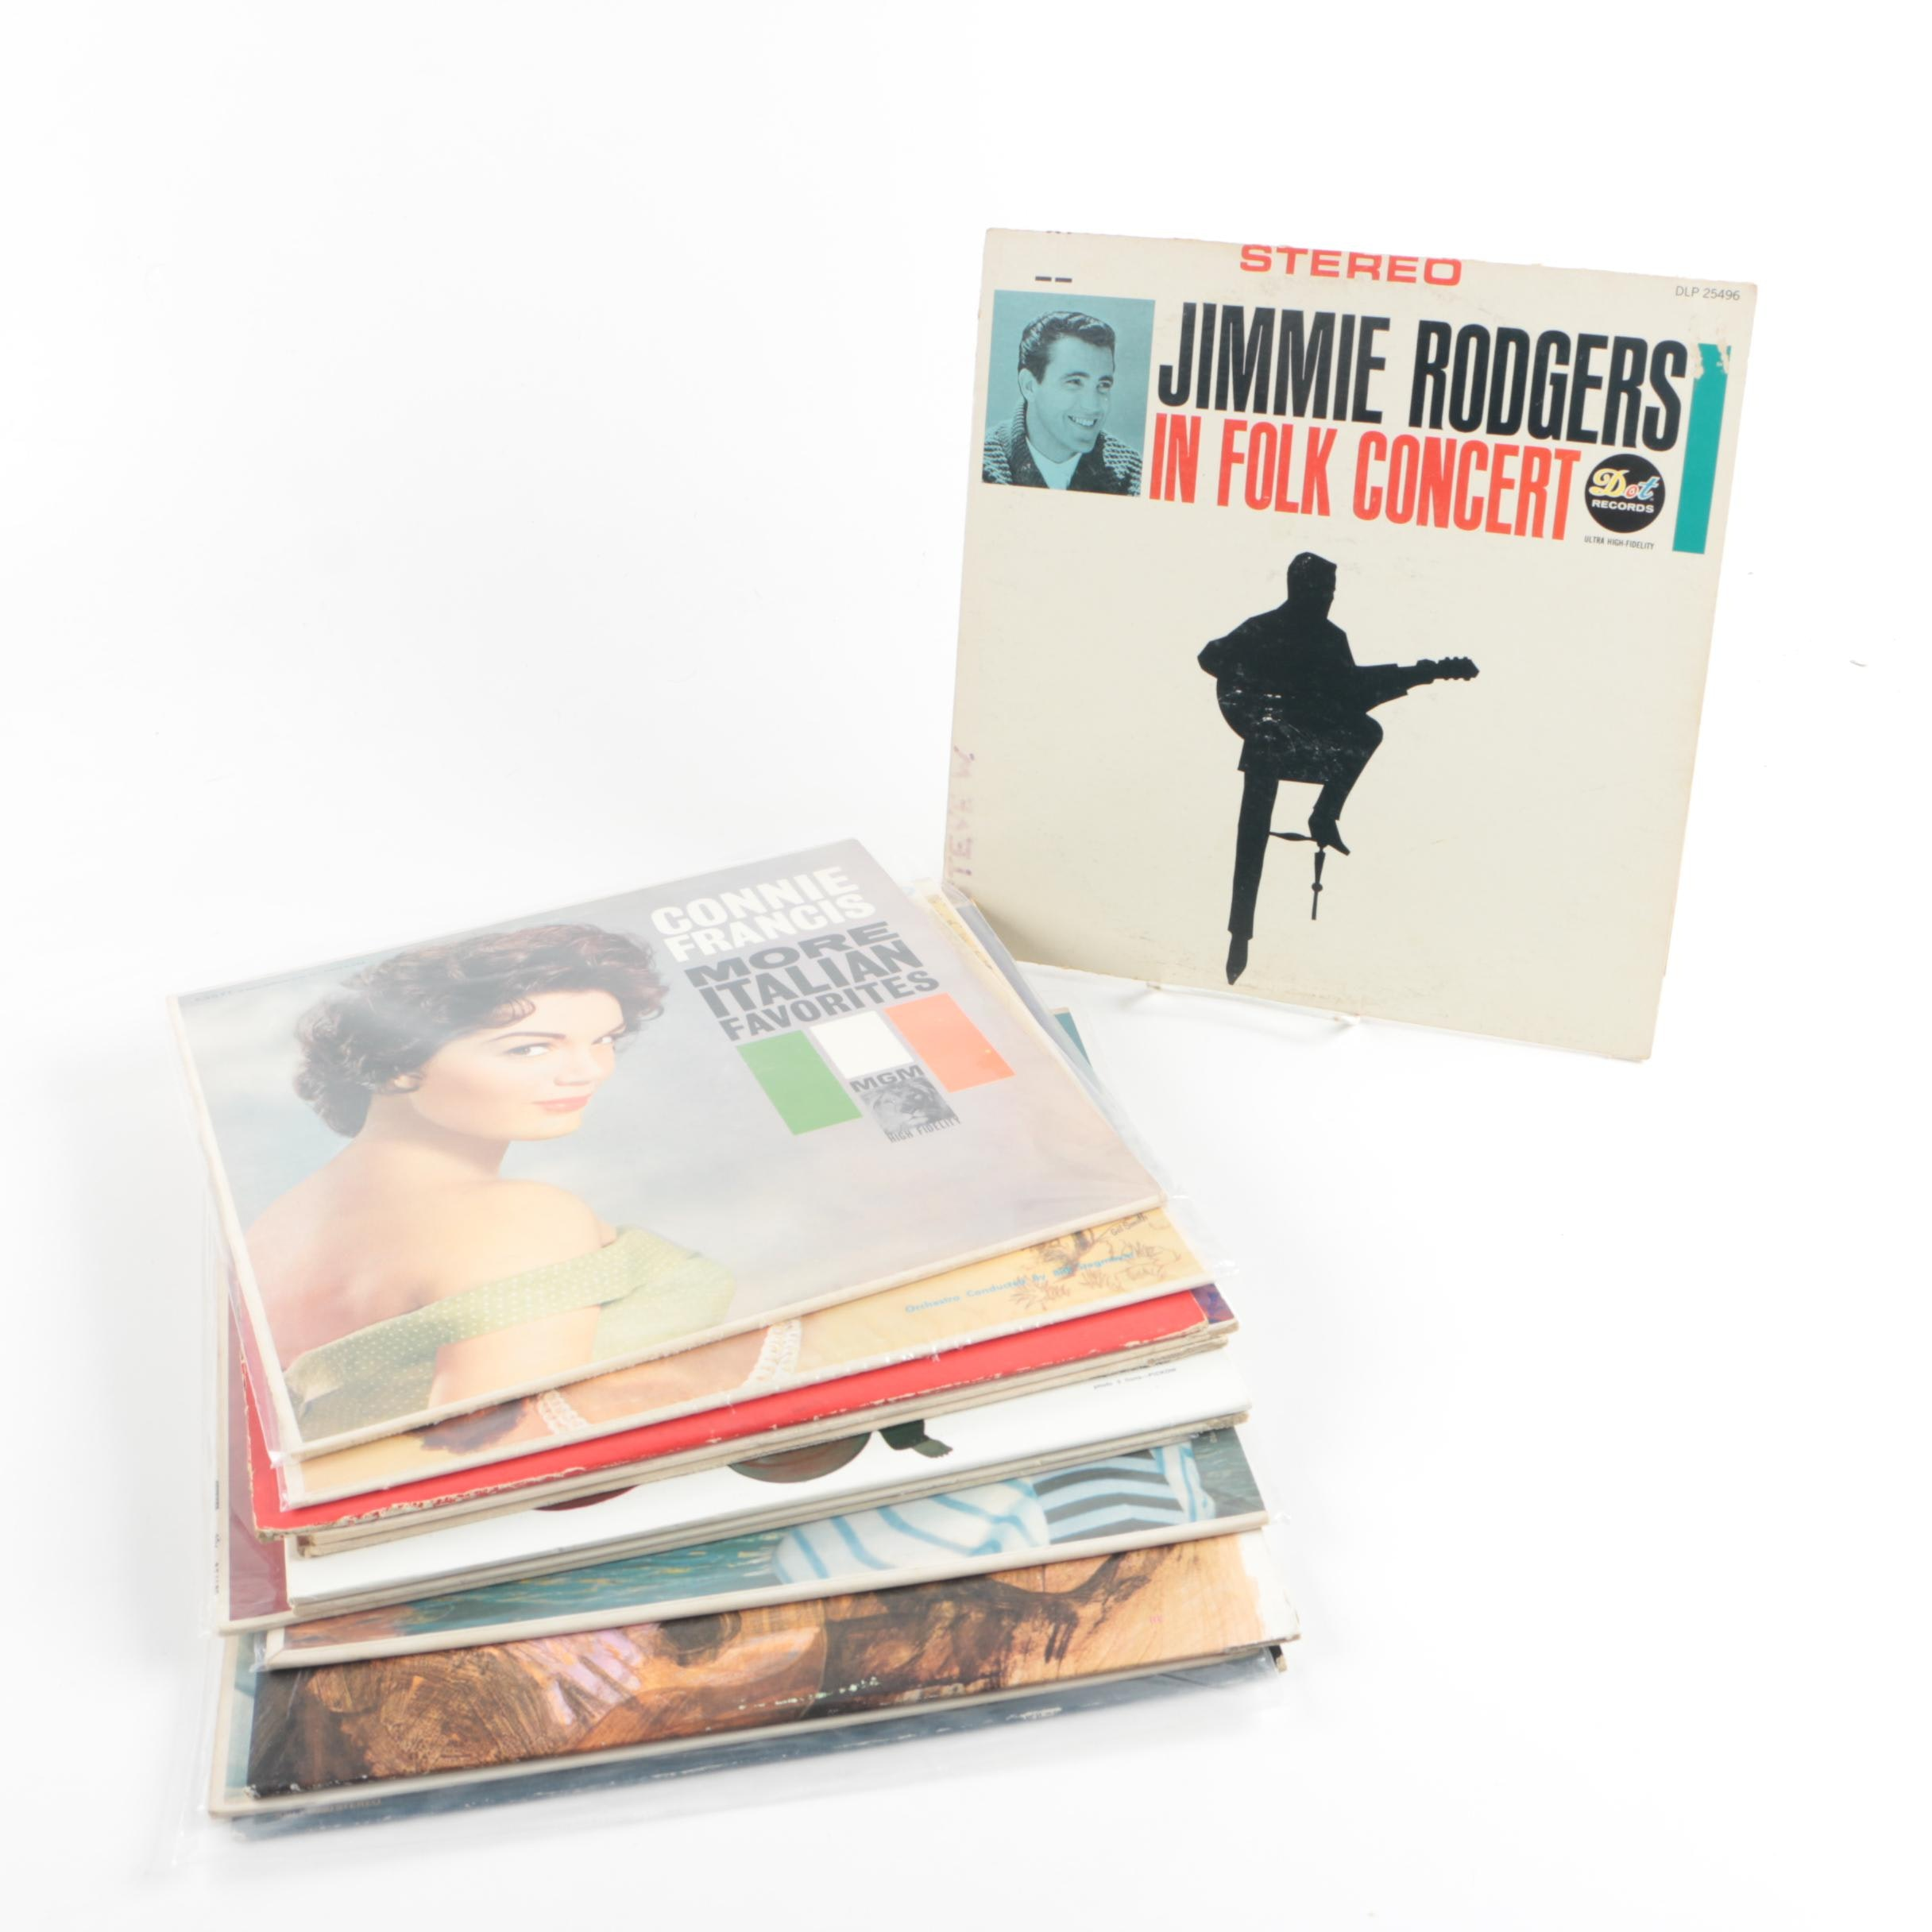 Vintage Pop, Calypso and Folk Records Including Jimmie Rodgers and Henry Mancini